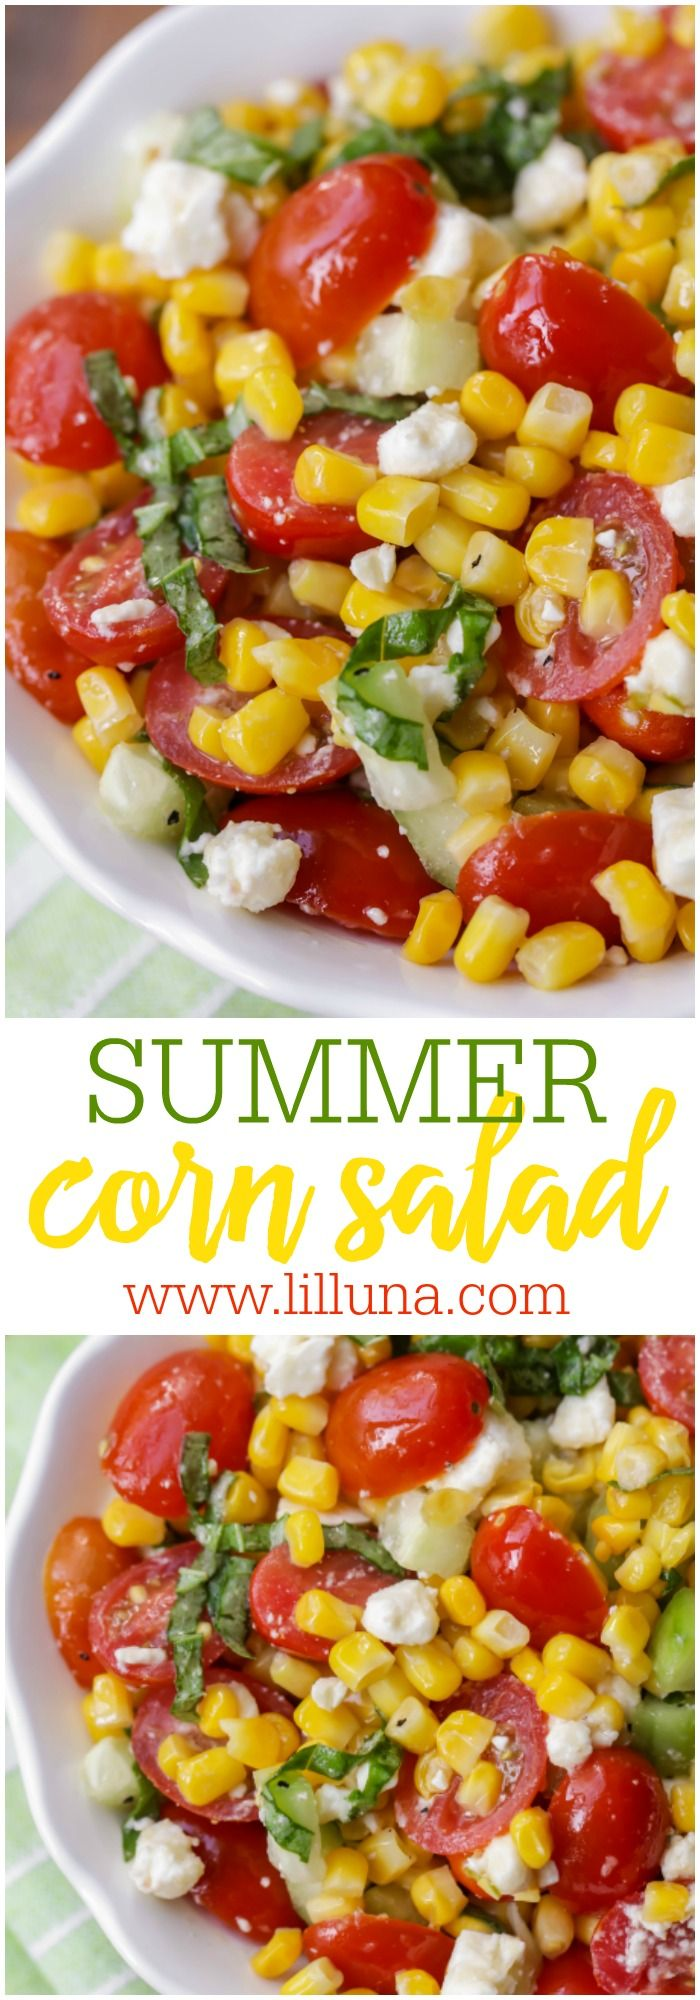 Summer Corn Salad - a light, flavorful salad filled with corn, tomatoes, feta, basil and cucumber. It's perfect for BBQs and will be a hit at any party! (Summer Vegetable Recipes)